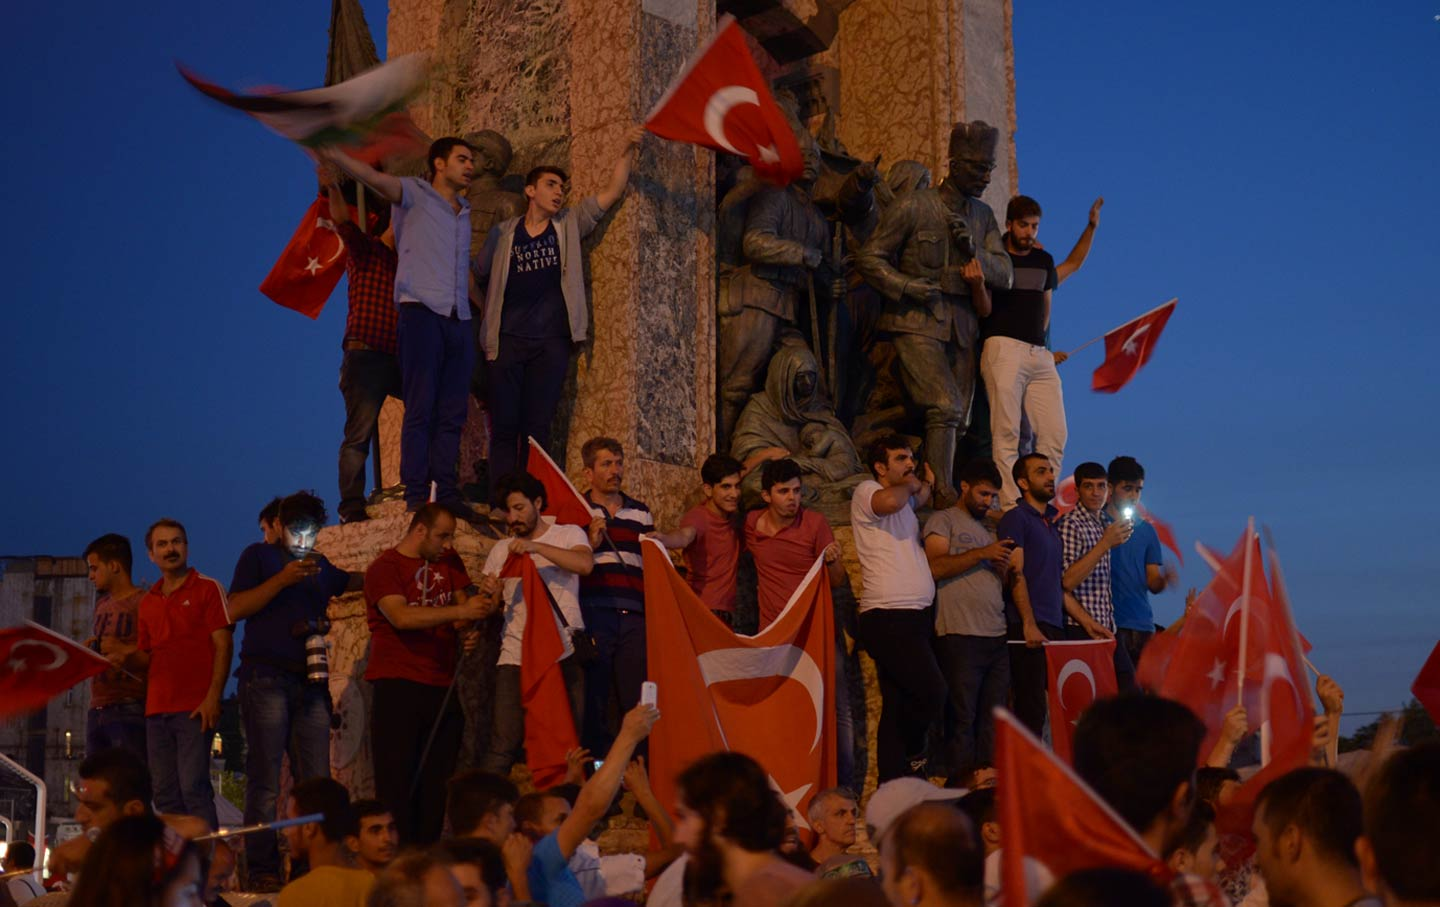 Young men stand on the statue of Mustafa Atatürk, the founder of Turkey who instituted secular democracy.